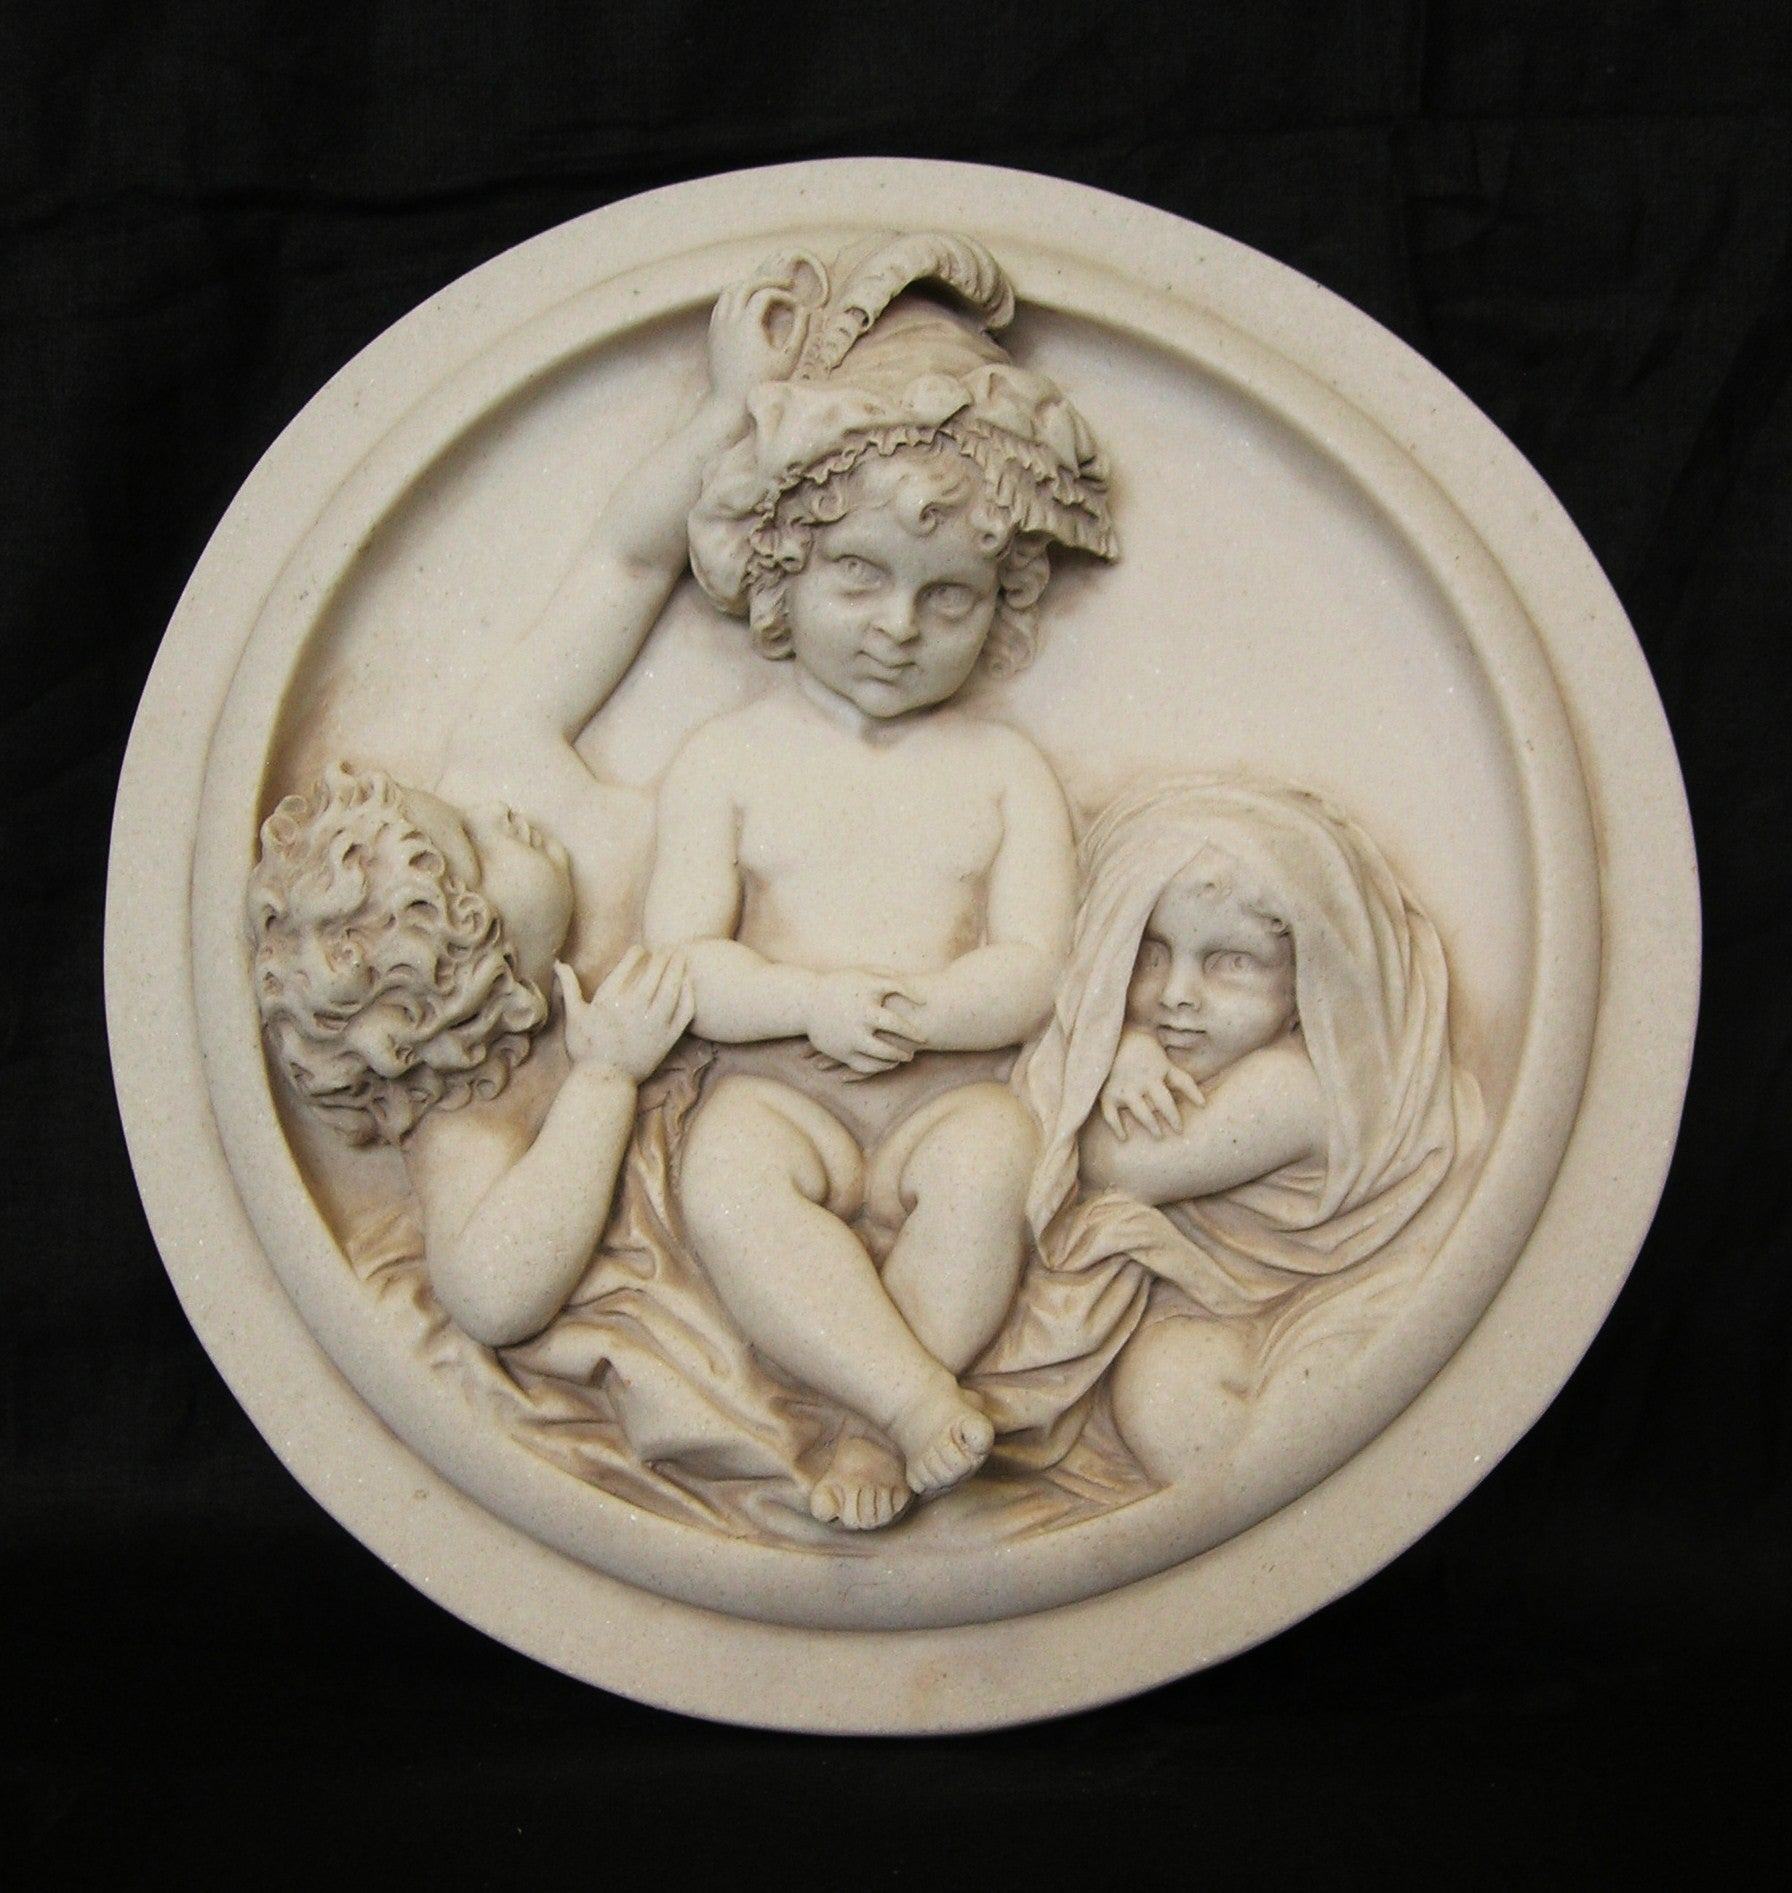 The Infant Academy Relief